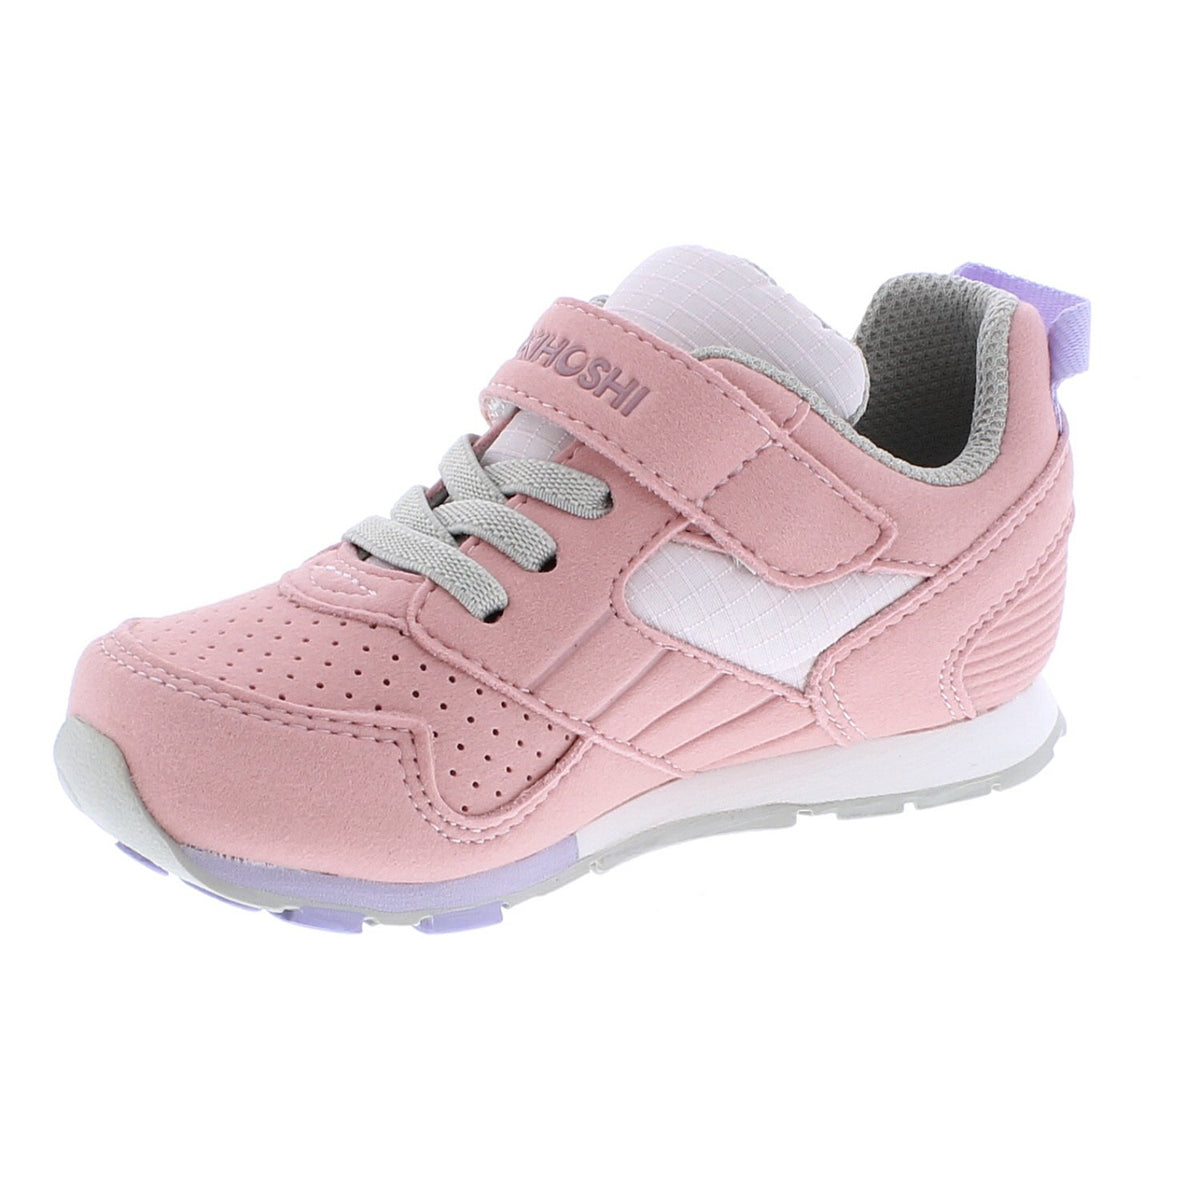 Childrens Tsukihoshi Racer Sneaker in Rose/Pink from the front view